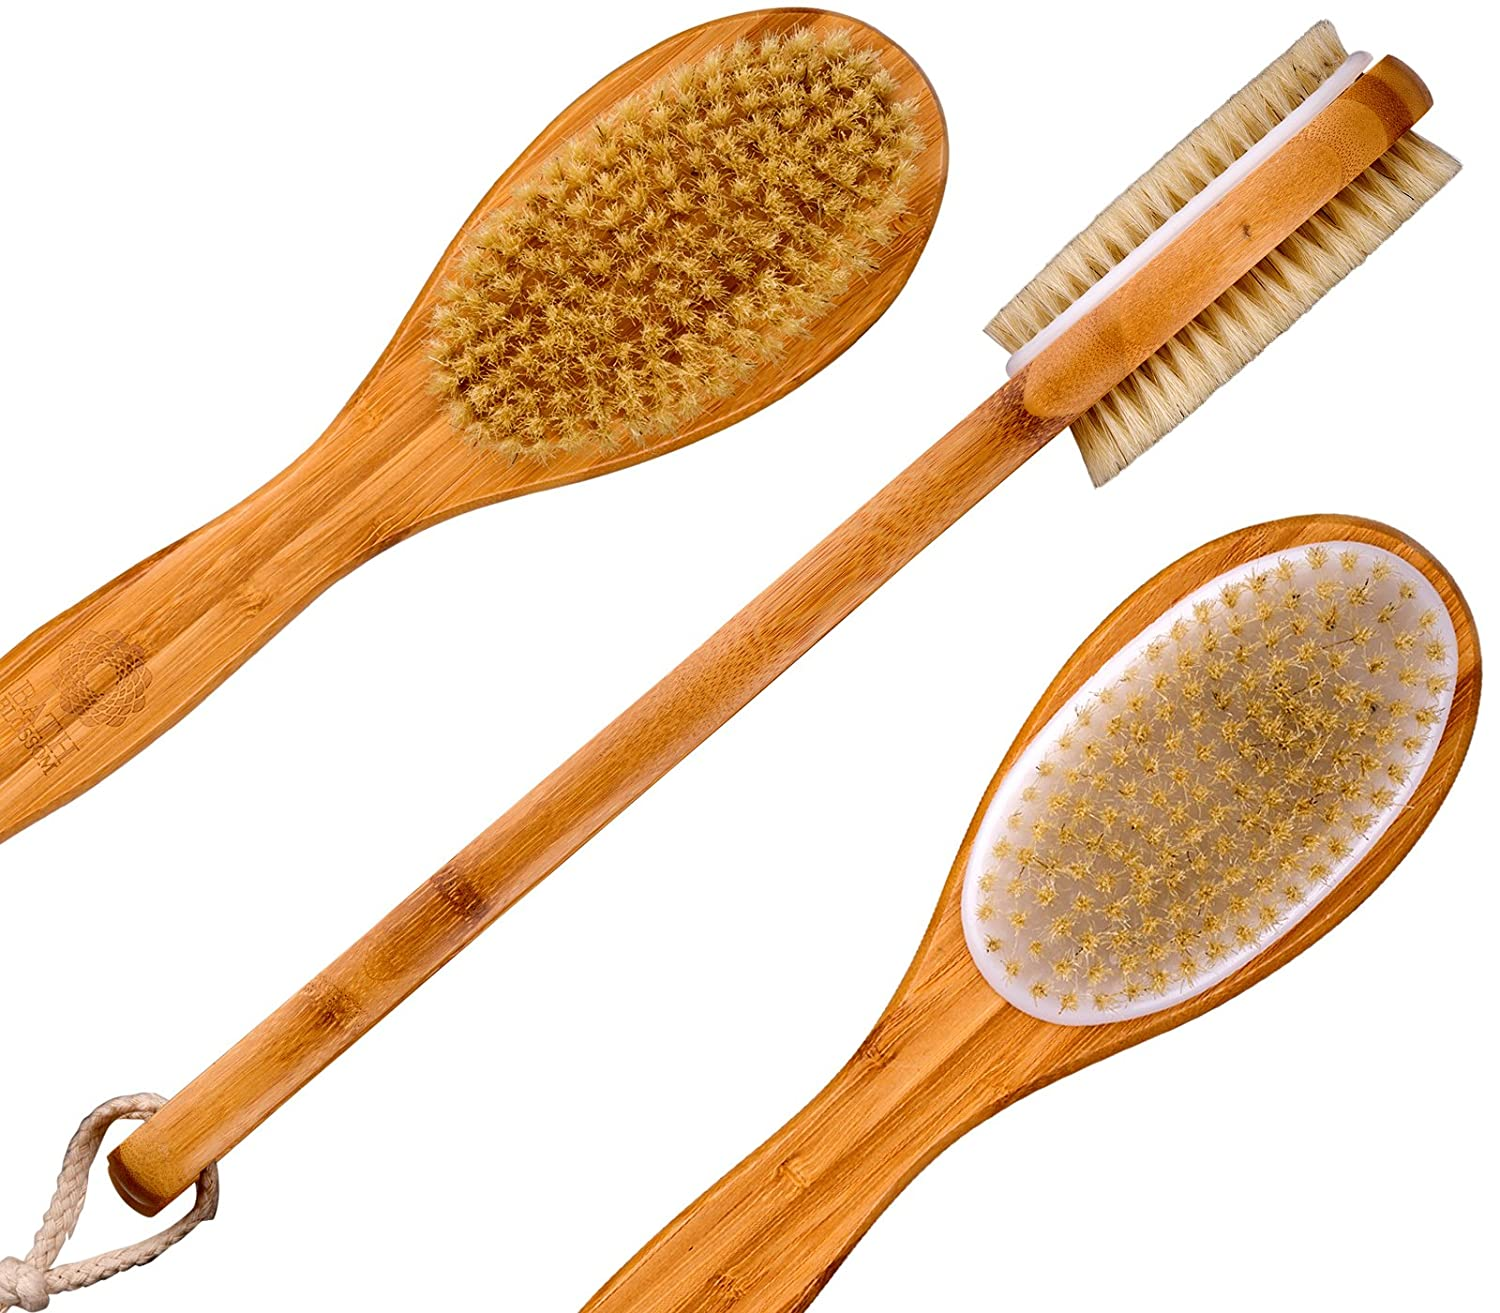 Bath Blossom Bamboo Bath Body Brush Extra Long Handle Exfoliating Back Scrubber - Effective Back Brush Exfoliation and Skin Cellulite Brushes - Used for Wet or Dry Brushing For Men and Women Blossom Innovations